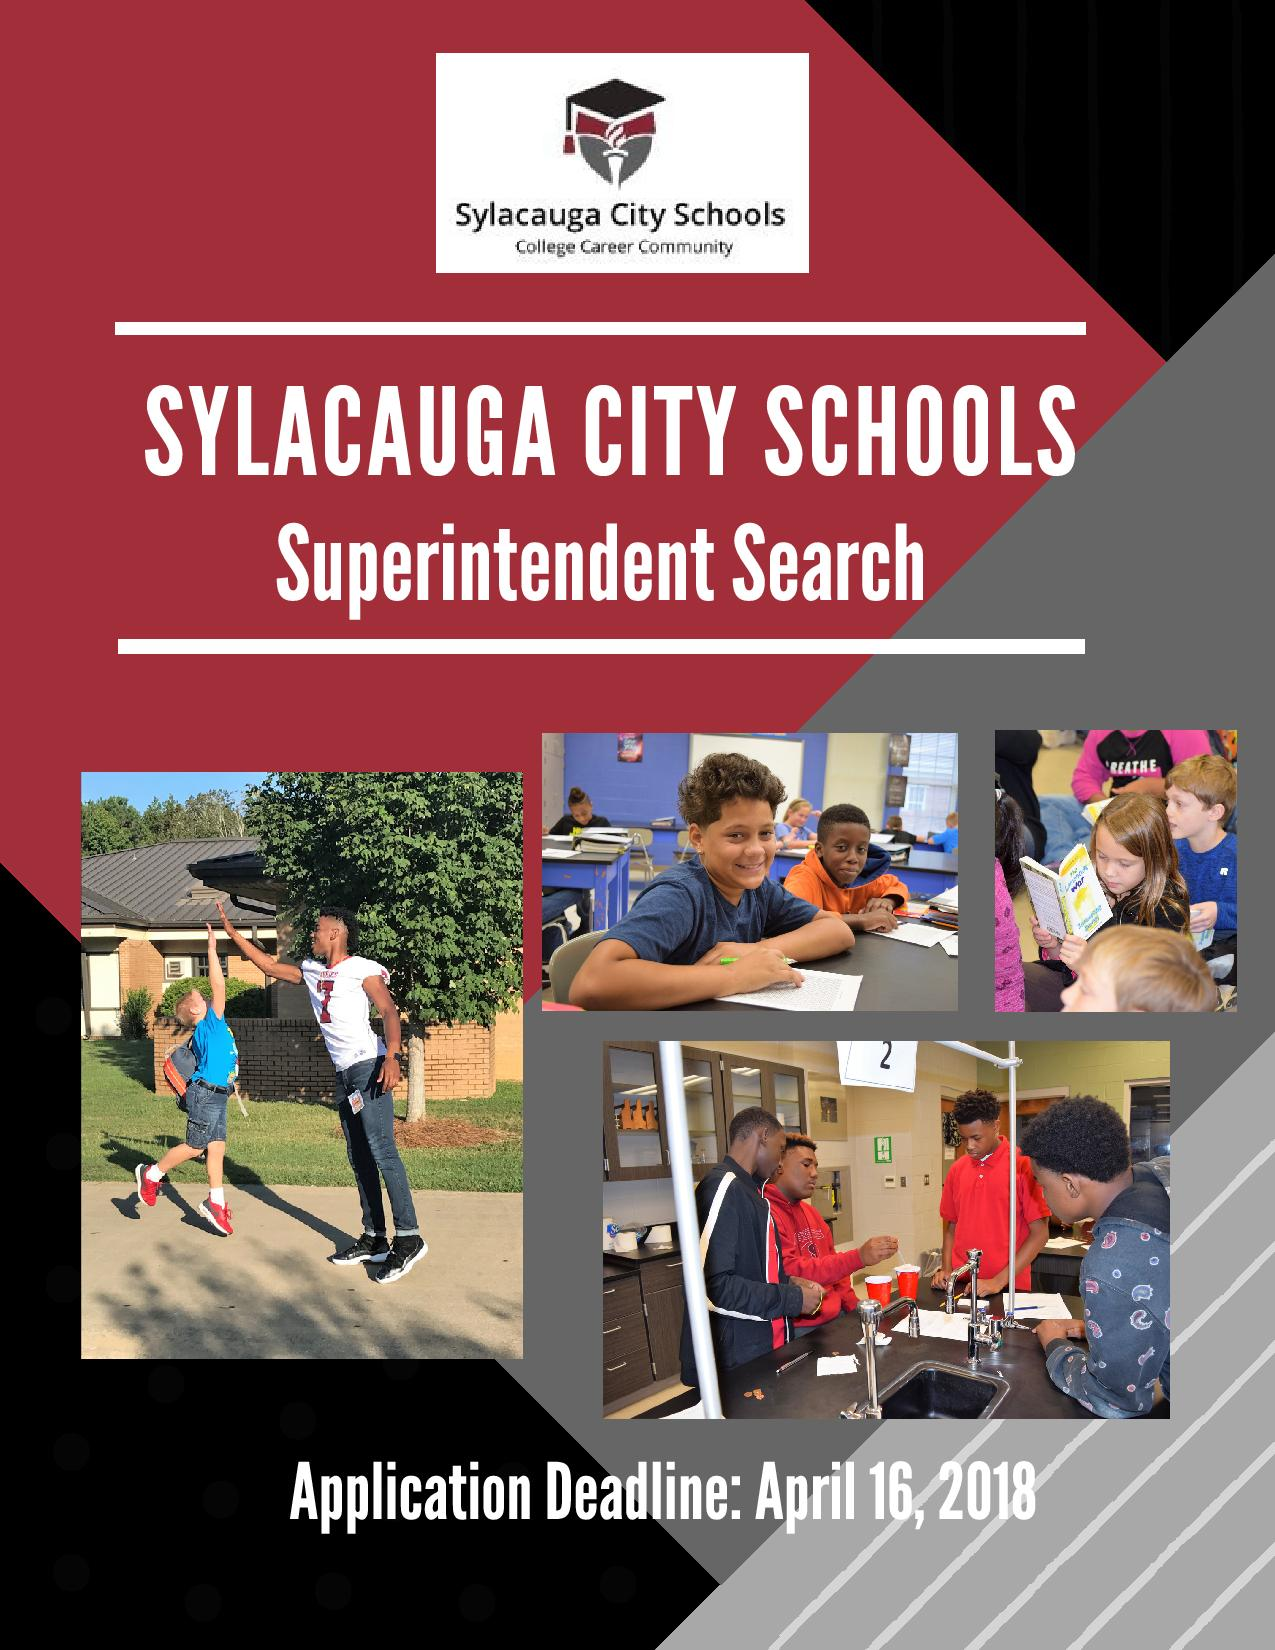 Picture with the words Sylacauga City Schools Superintendent Search. Application deadline is April 16, 2018